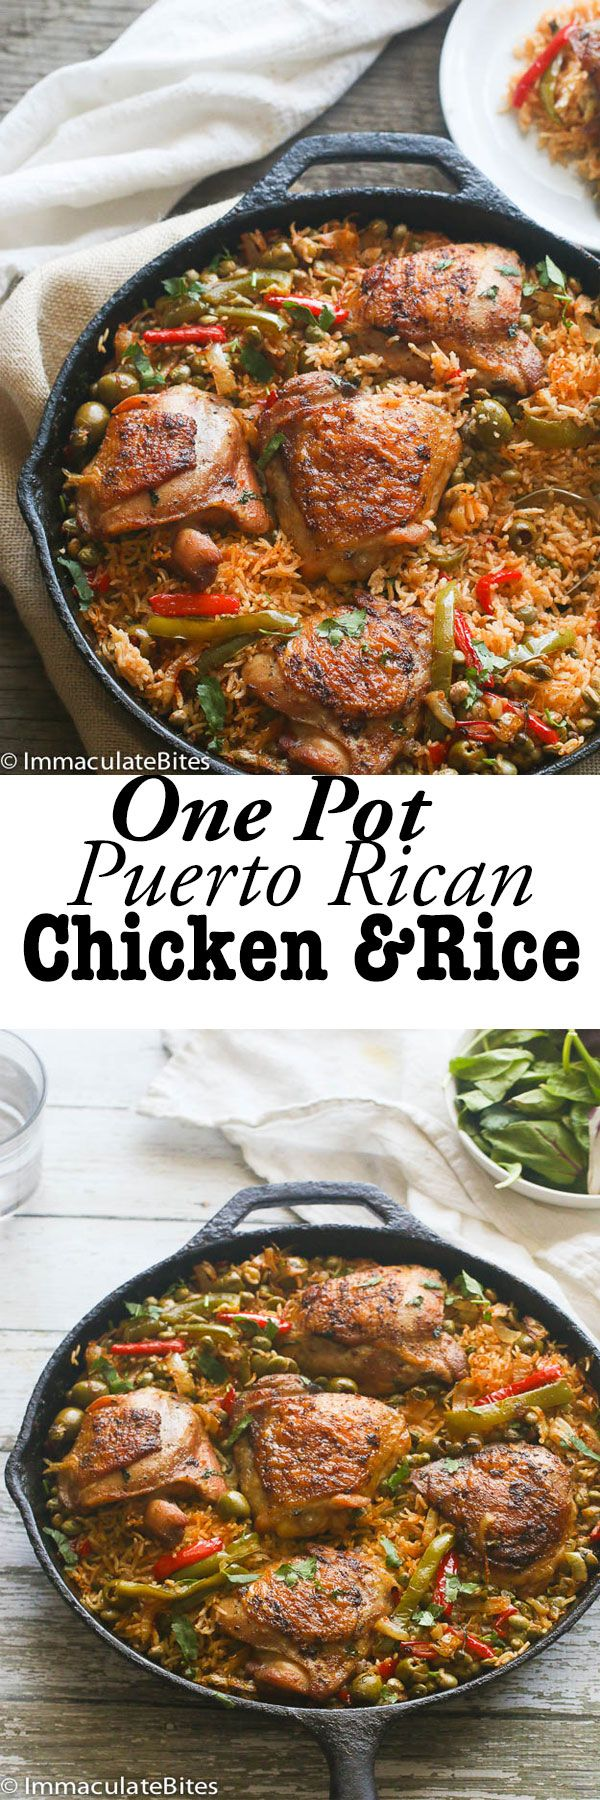 ne Pot Puerto Rican Chicken and Rice: An incredible chicken meal that would excite your taste buds. Flavored with sofrito sauce, spices, peas and olives. So eas